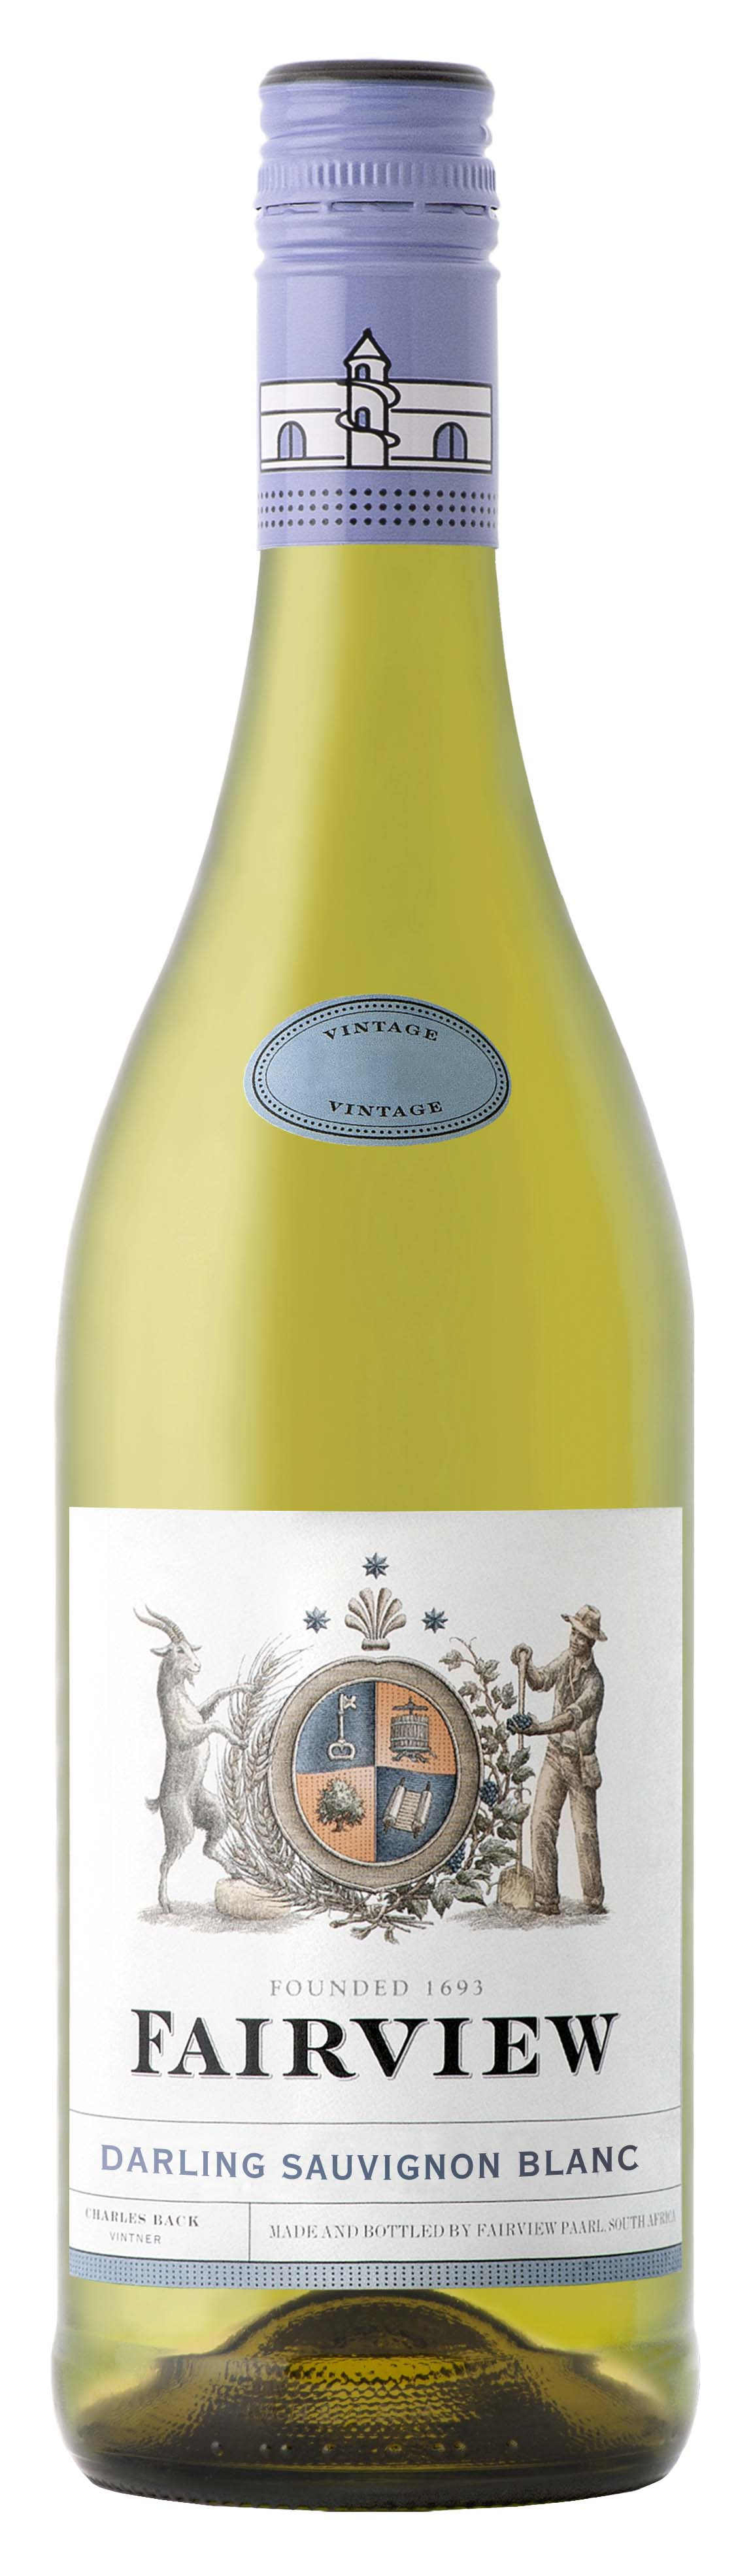 Fairview, Darling Sauvignon Blanc 2018